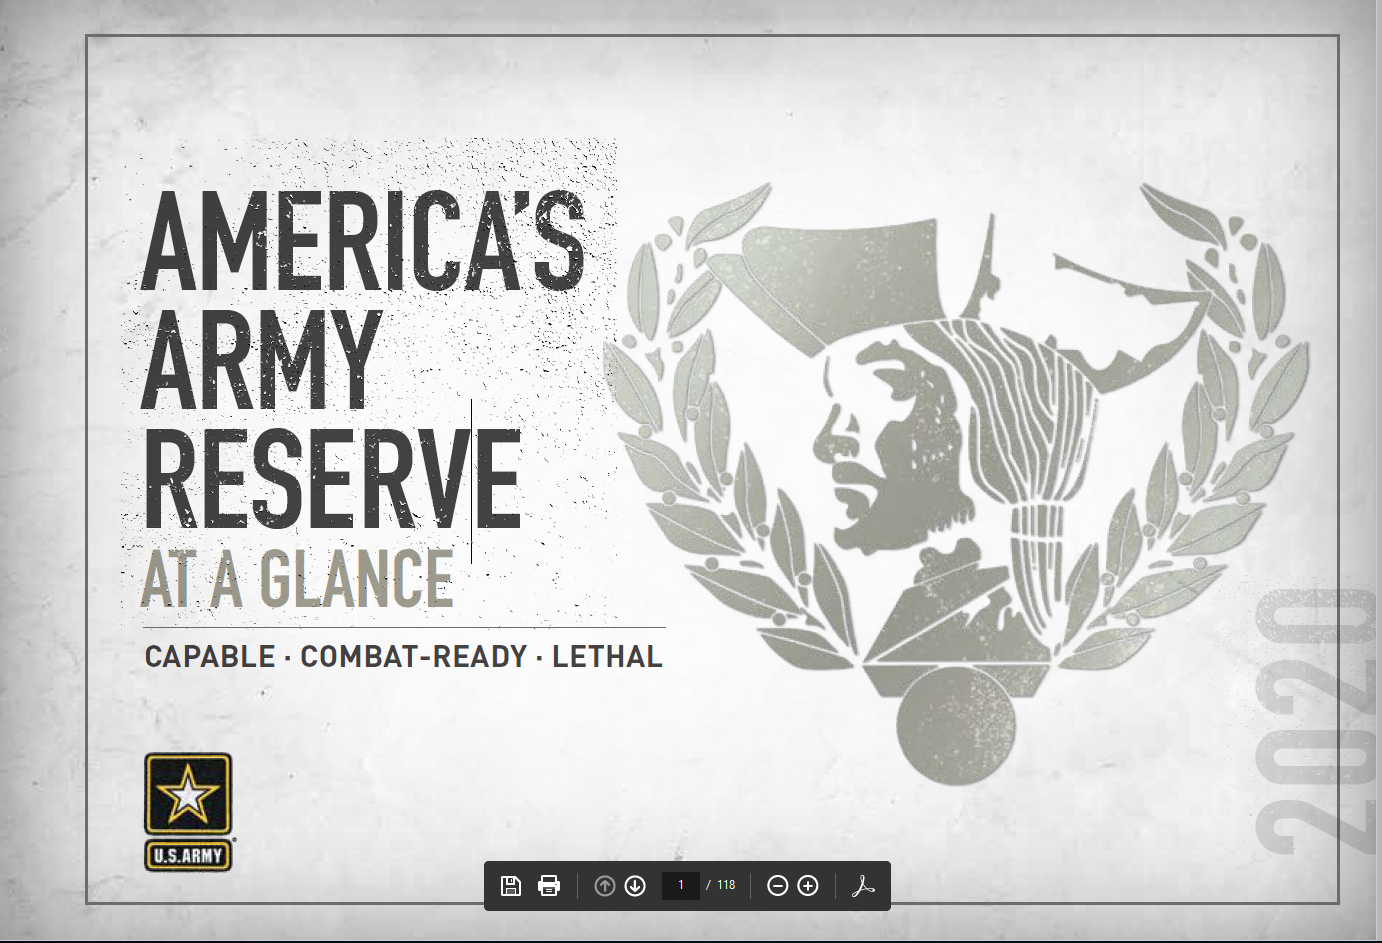 U.S. Army Reserve At A Glance